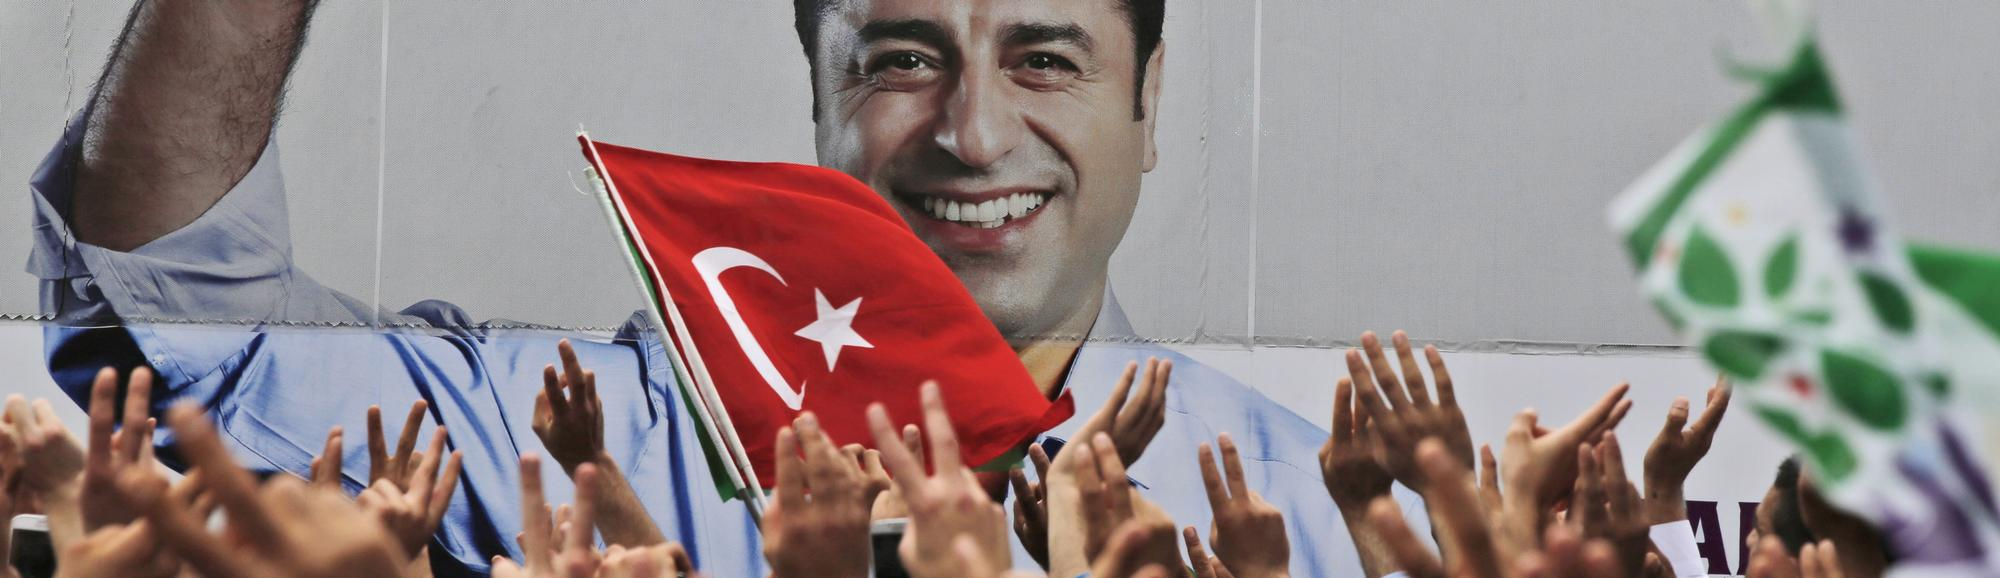 Early Results Go Against Erdogan and Turkey's Ruling Party in Historic Election